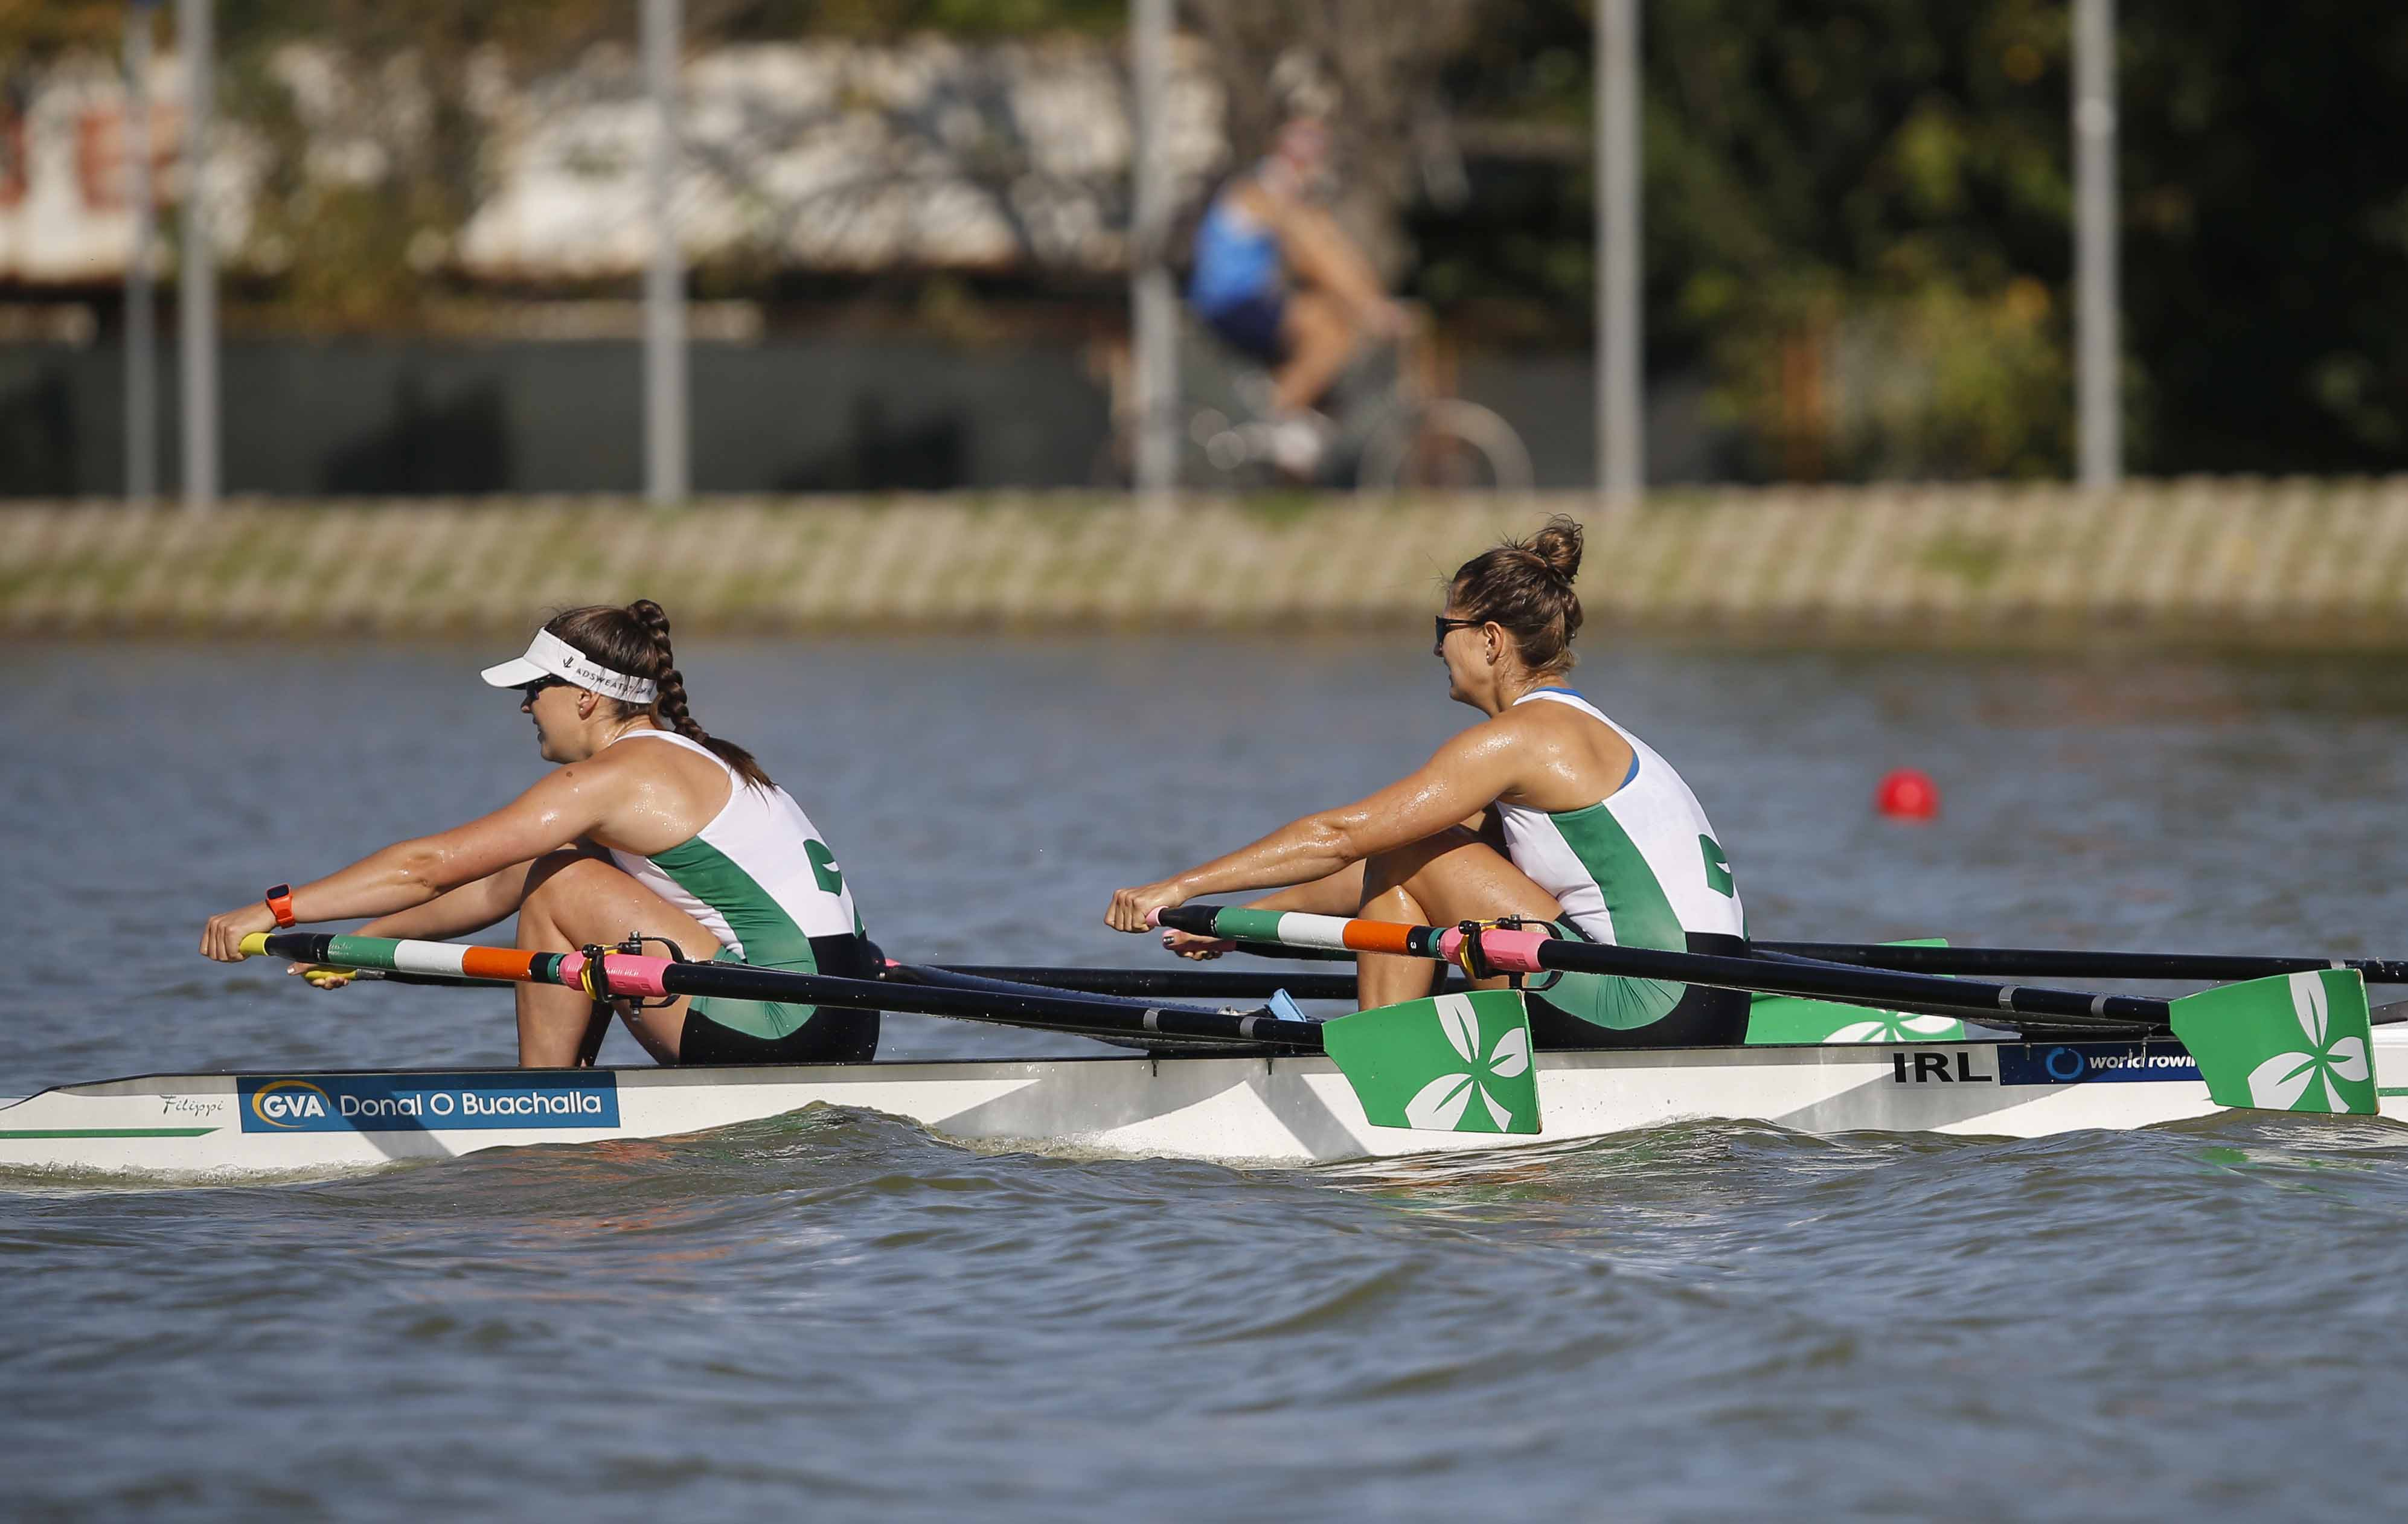 Ireland's Monika Dukarska (left) and Aileen Crowley compete in the final of the Women's Double Skulls at the World Rowing Championships in Plovdiv, Bulgaria on Sunday.